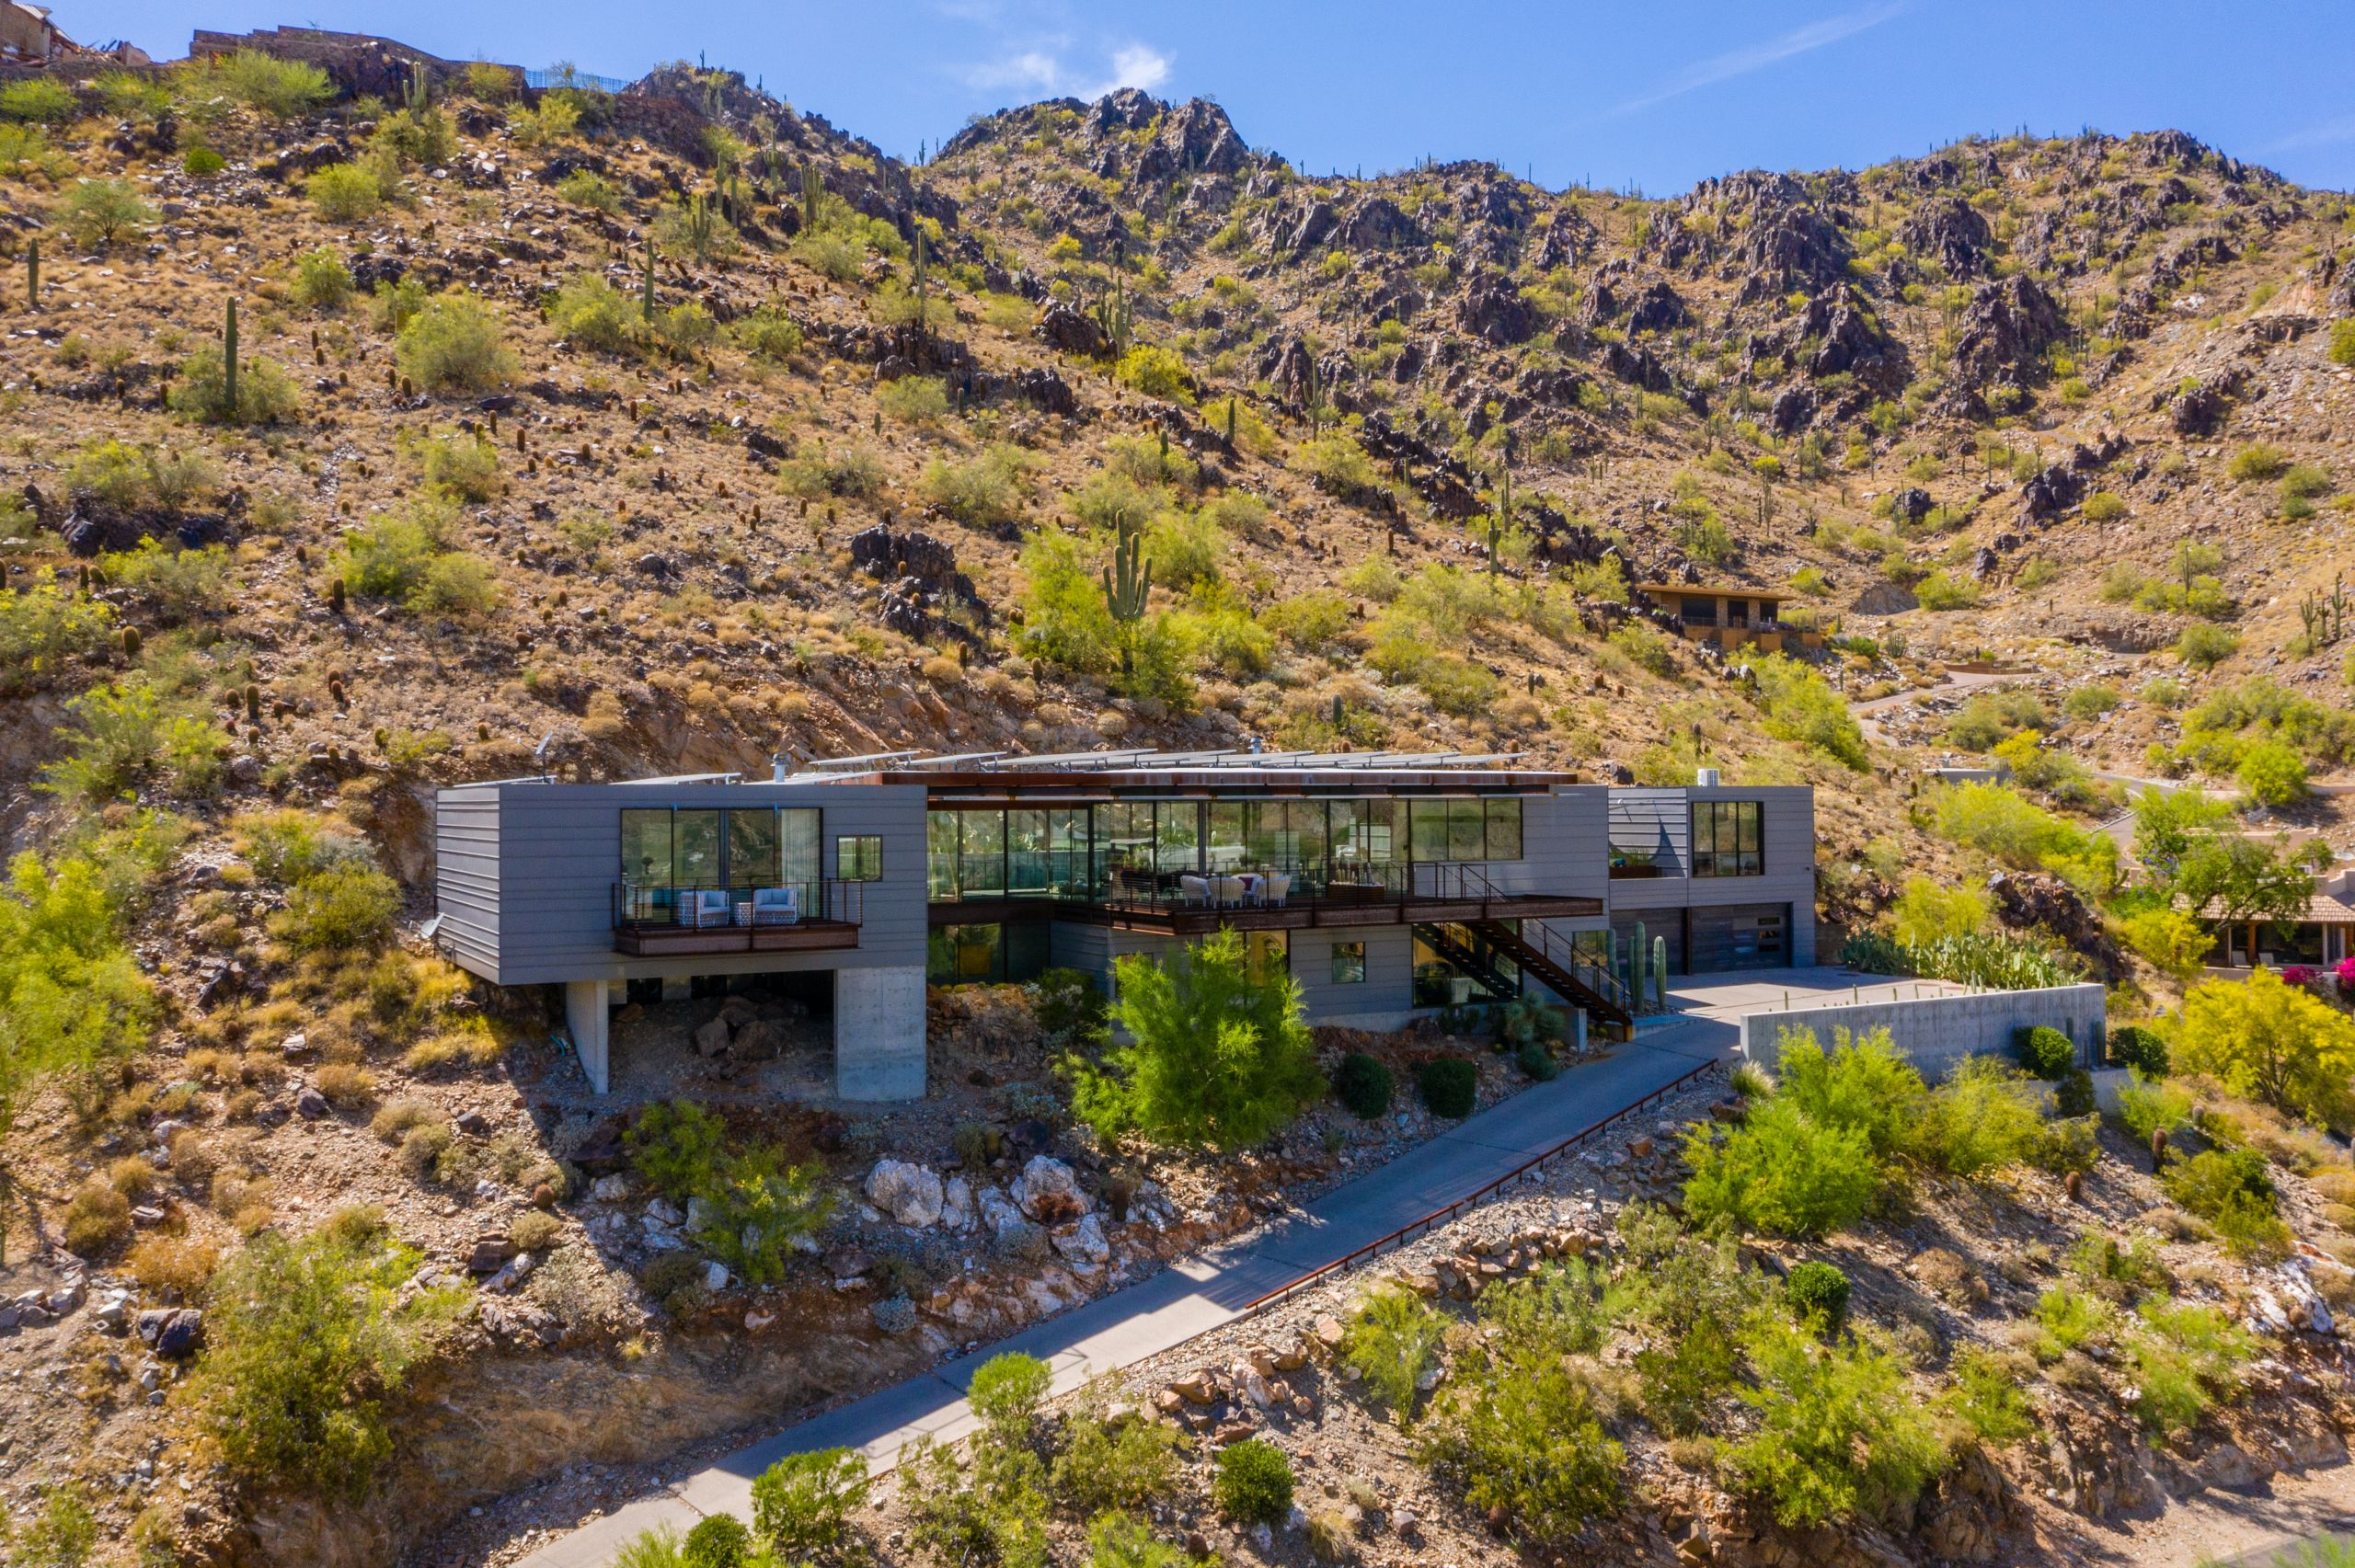 Paradise Valley, AZ - Home of Steel and Glass